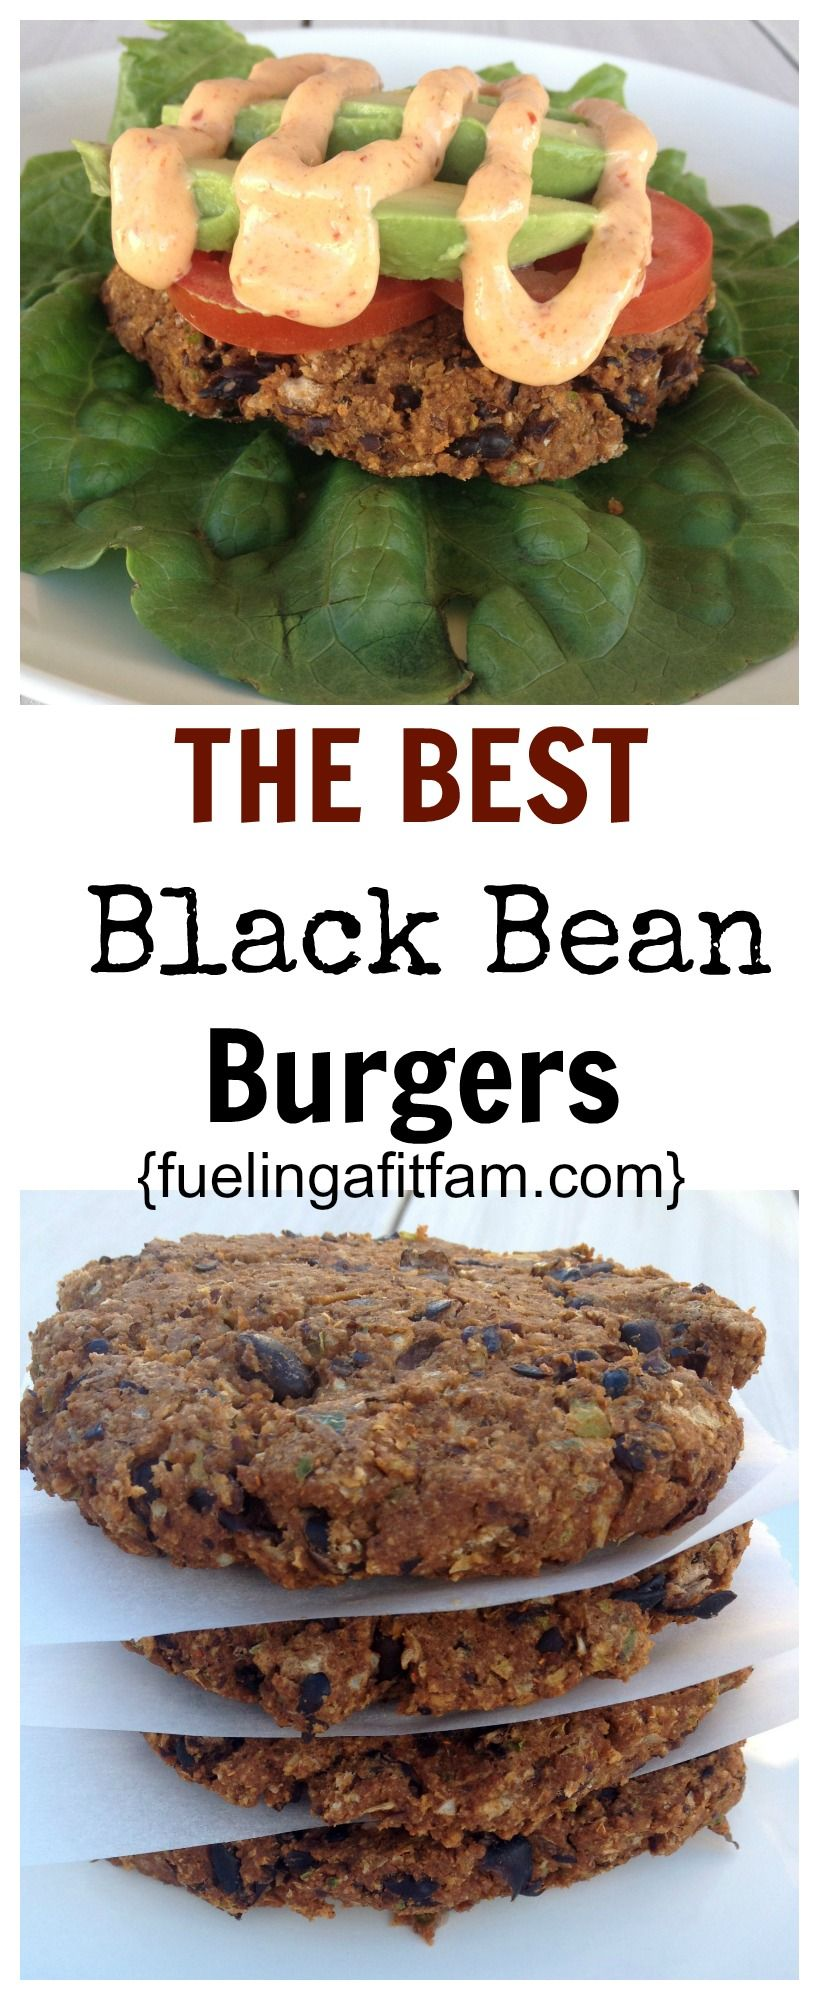 These are the best black bean burgers i have ever had